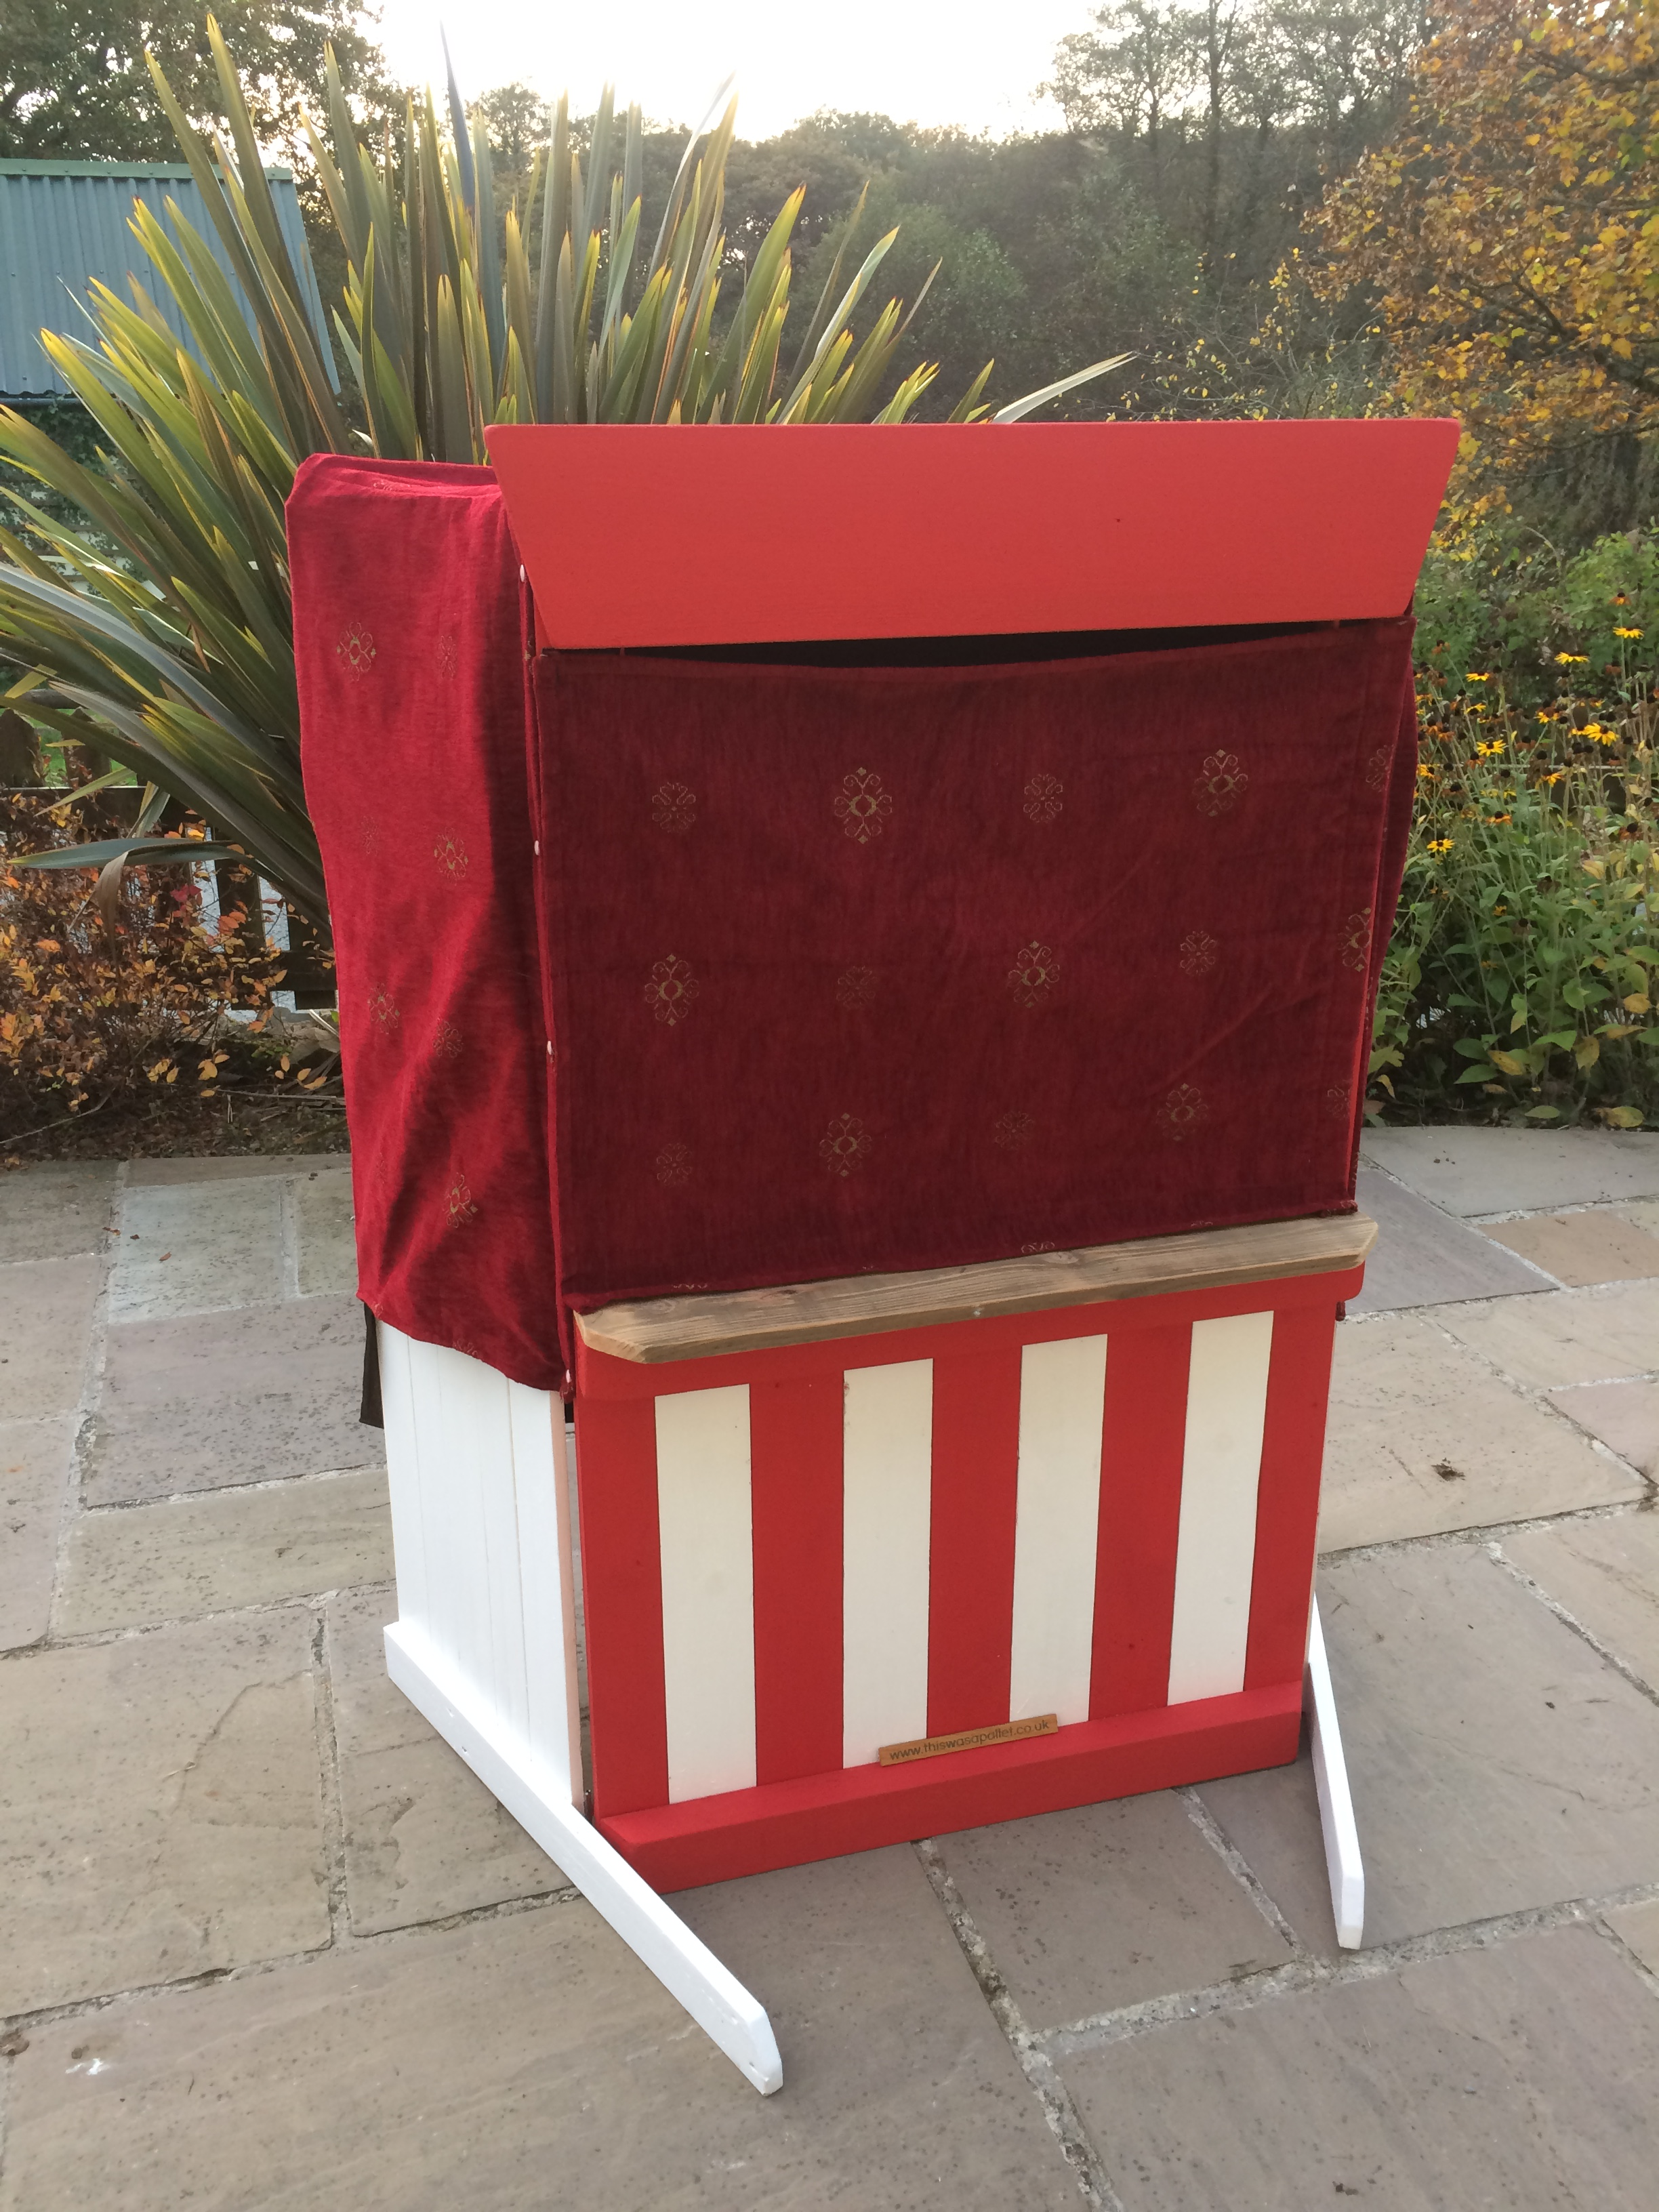 The Puppet Theatre - Children's Puppet theatre made from pallets